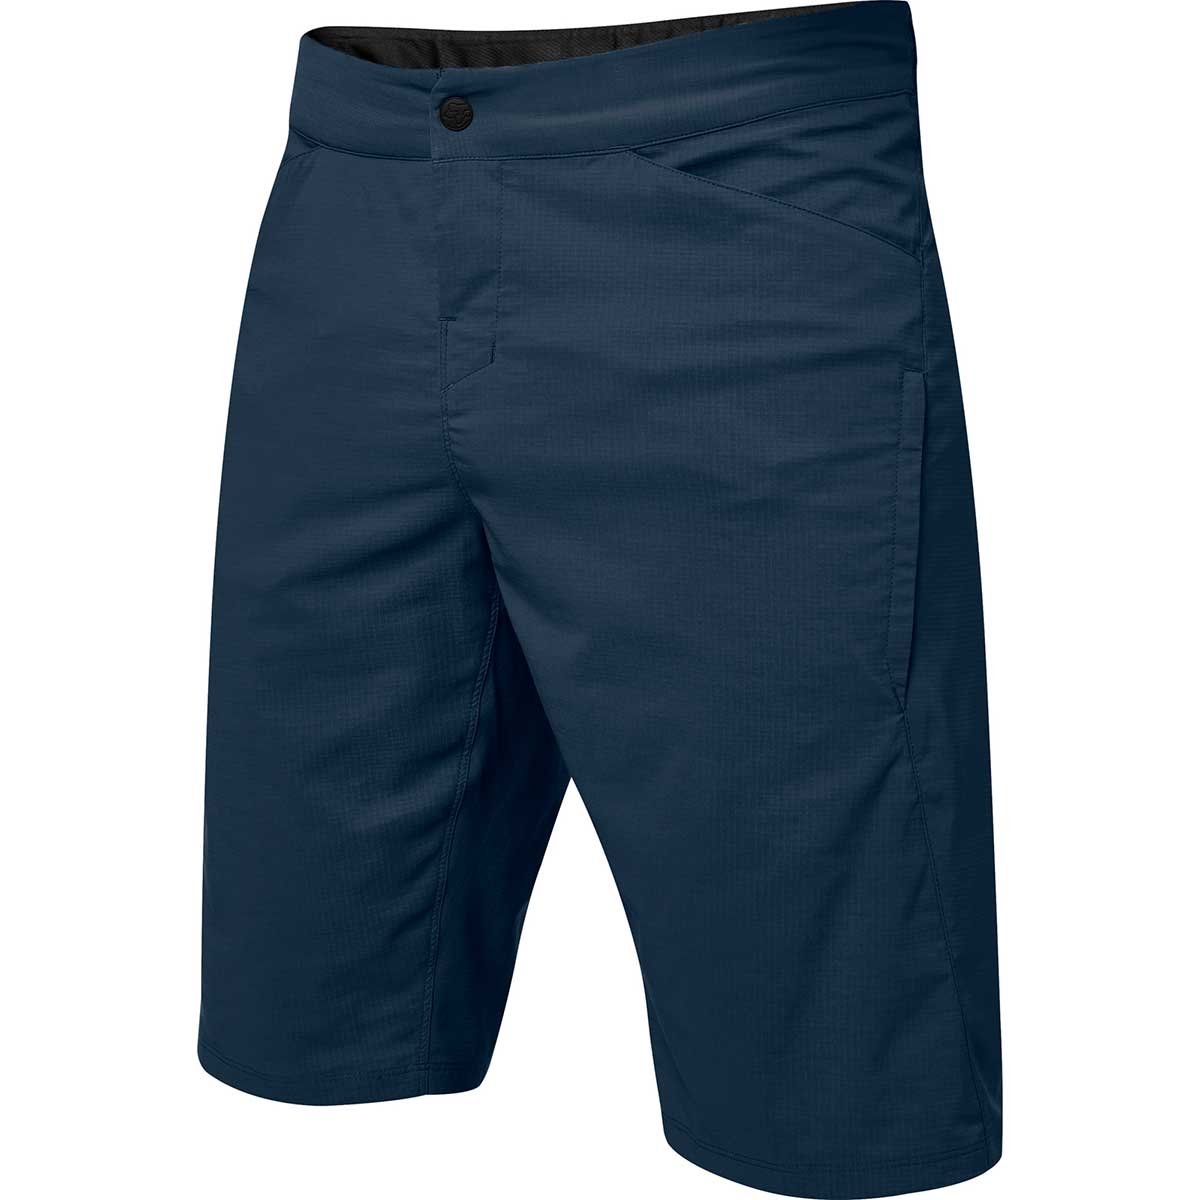 Fox men's Ranger Utility Short in Navy